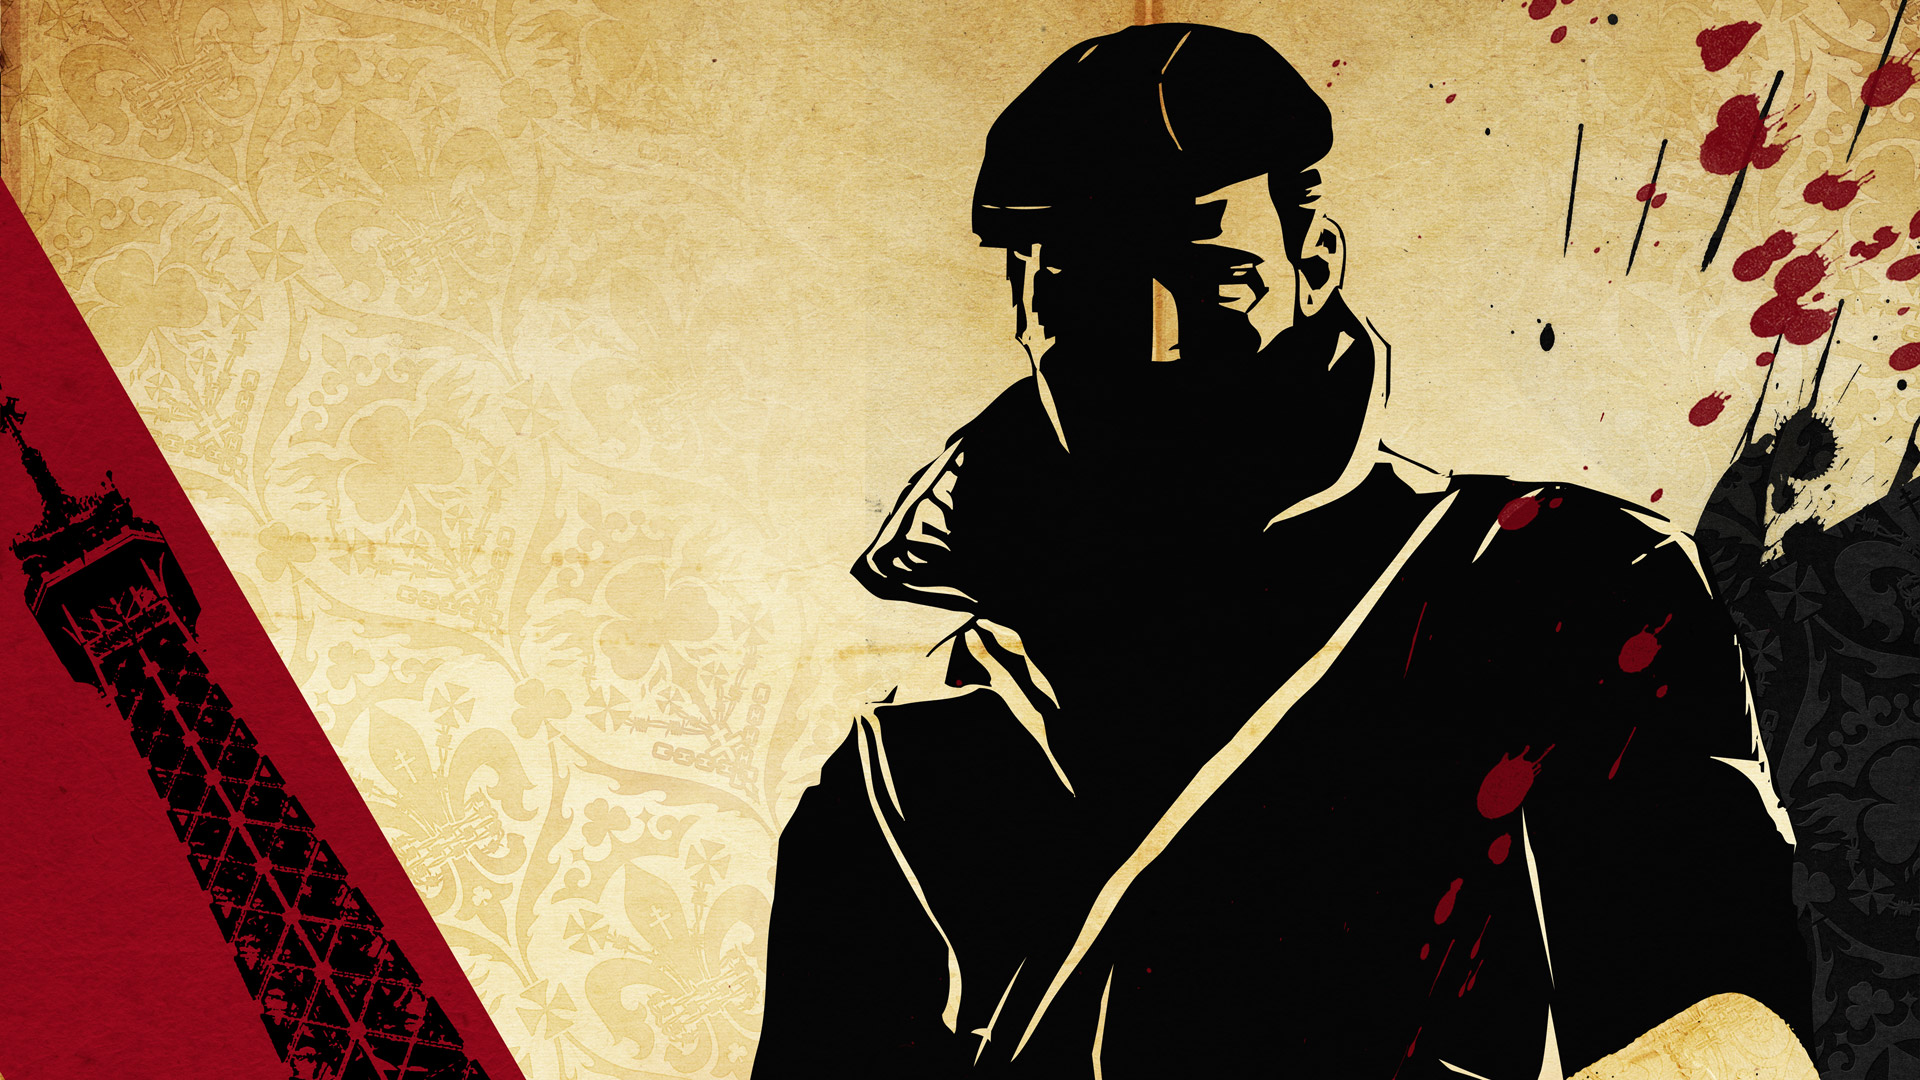 Free The Saboteur Wallpaper in 1920x1080